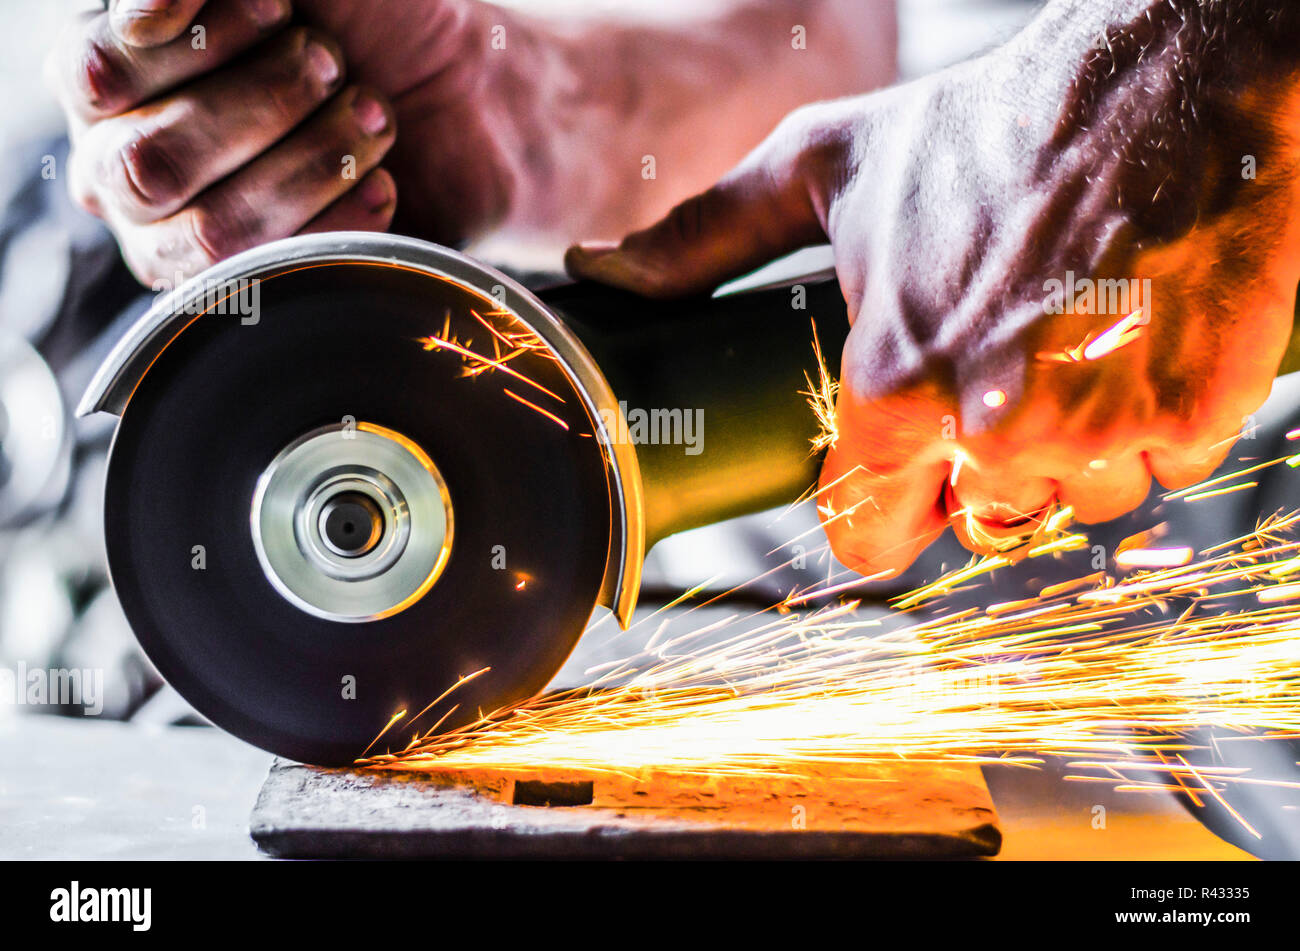 Sparks from the angle grinder - Stock Image